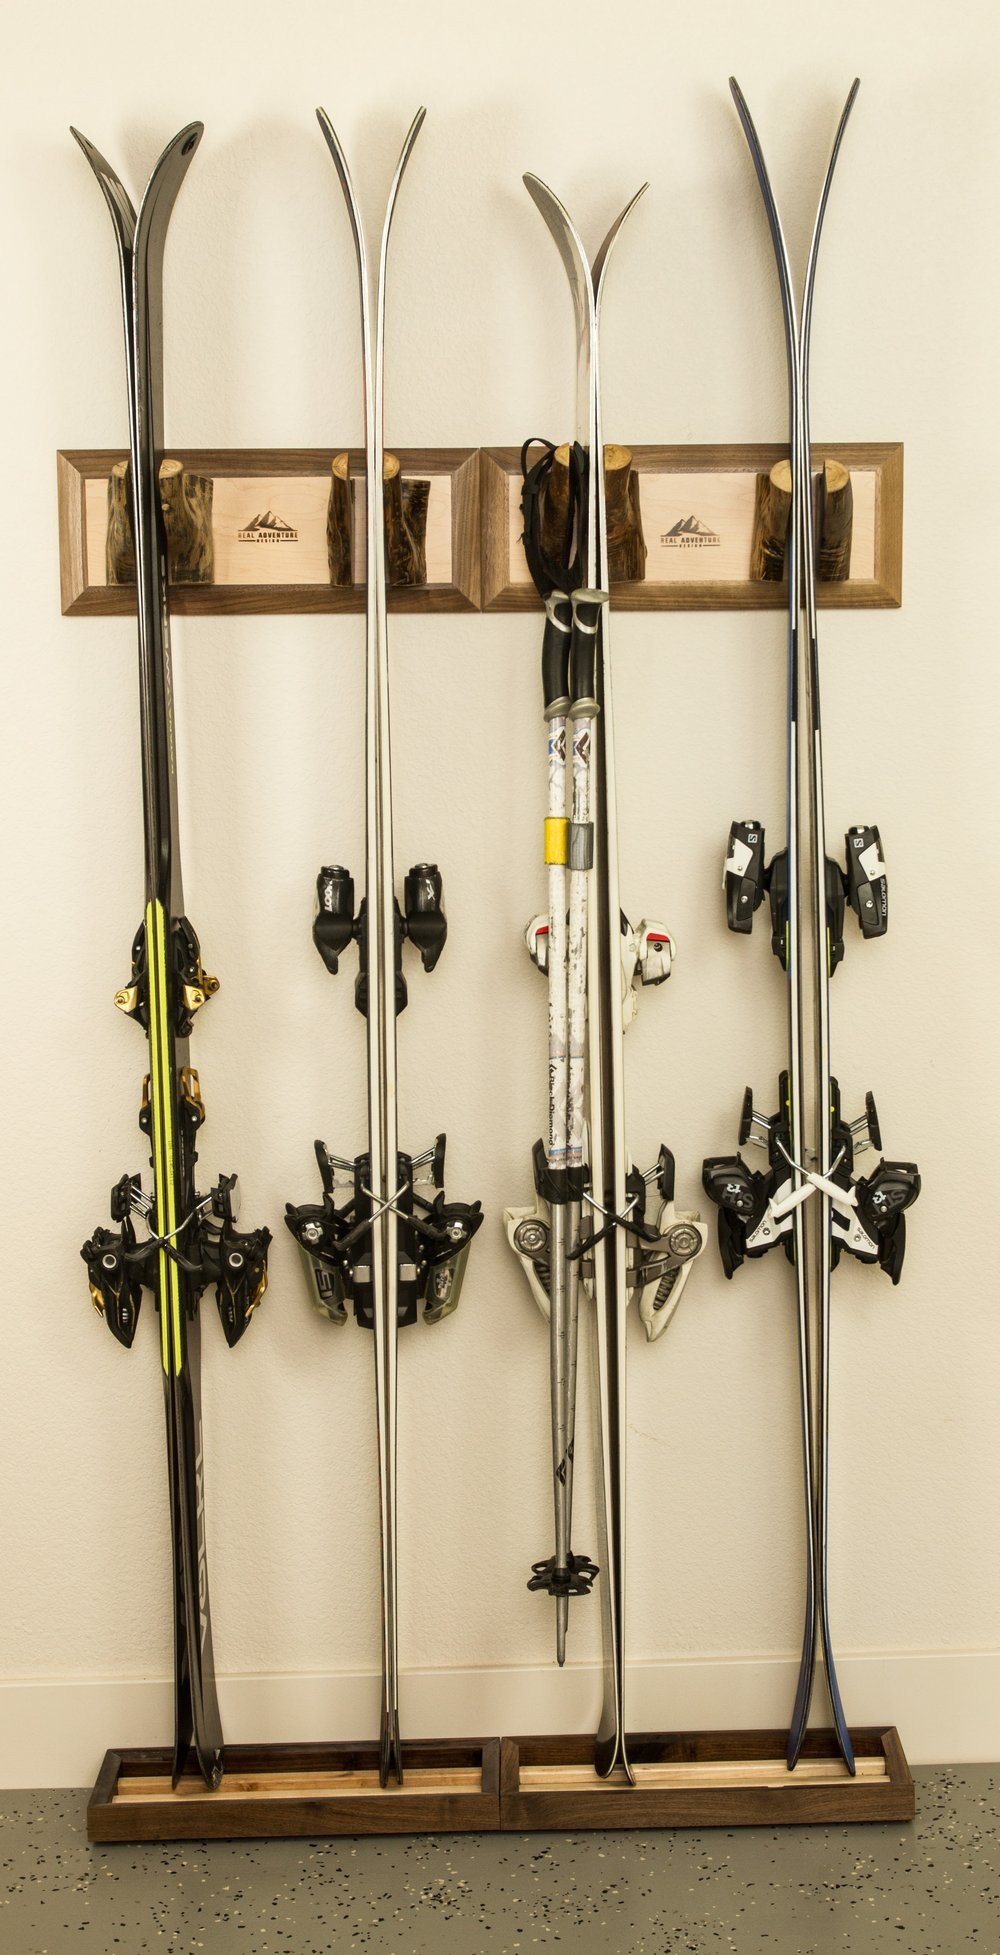 Once the kids are grown, the Meaden ski rack is modular - add them together for more ski capacity.